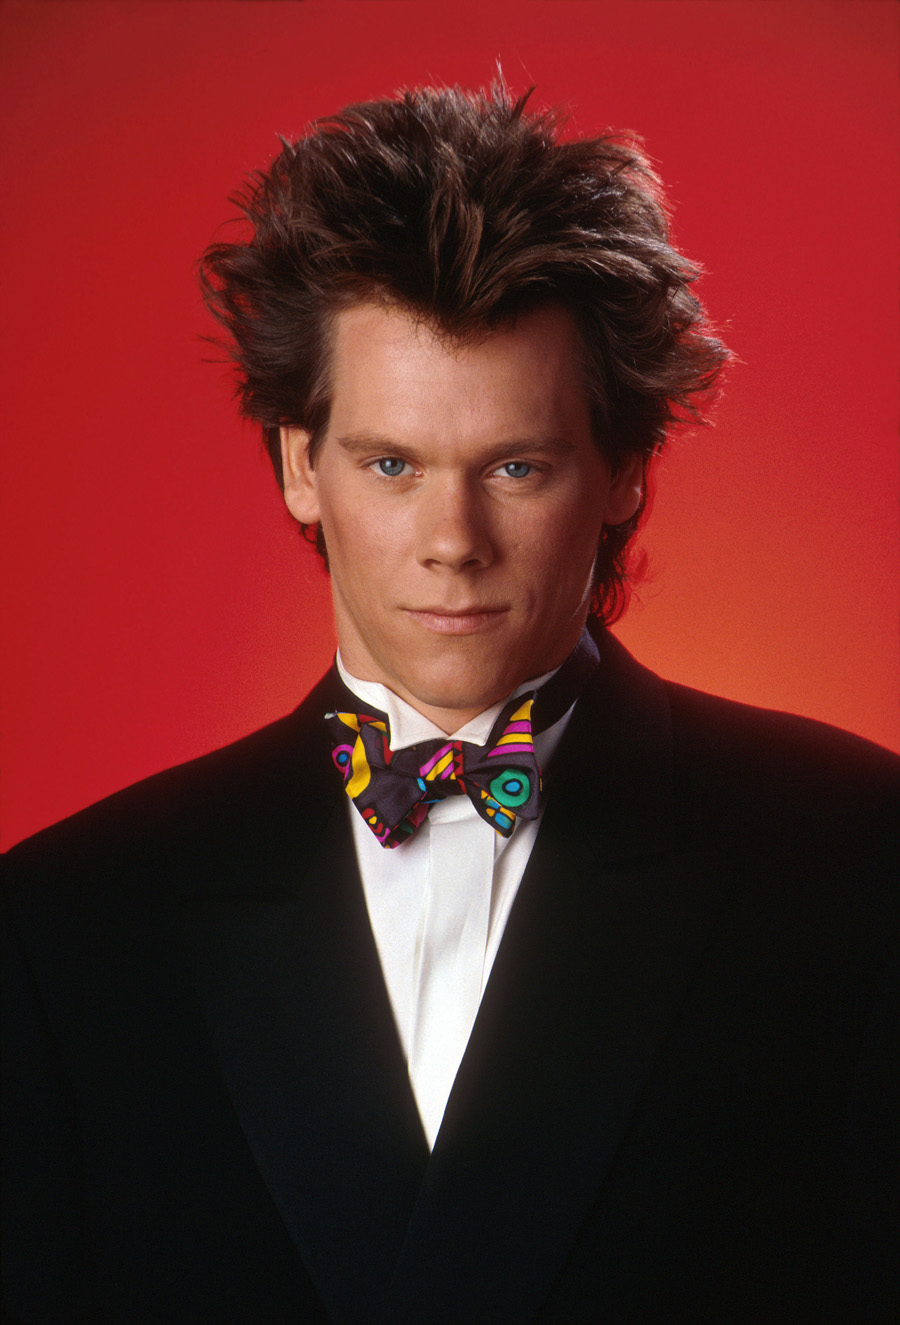 Kevin Bacon Photo 35 Of 55 Pics Wallpaper Photo 134182